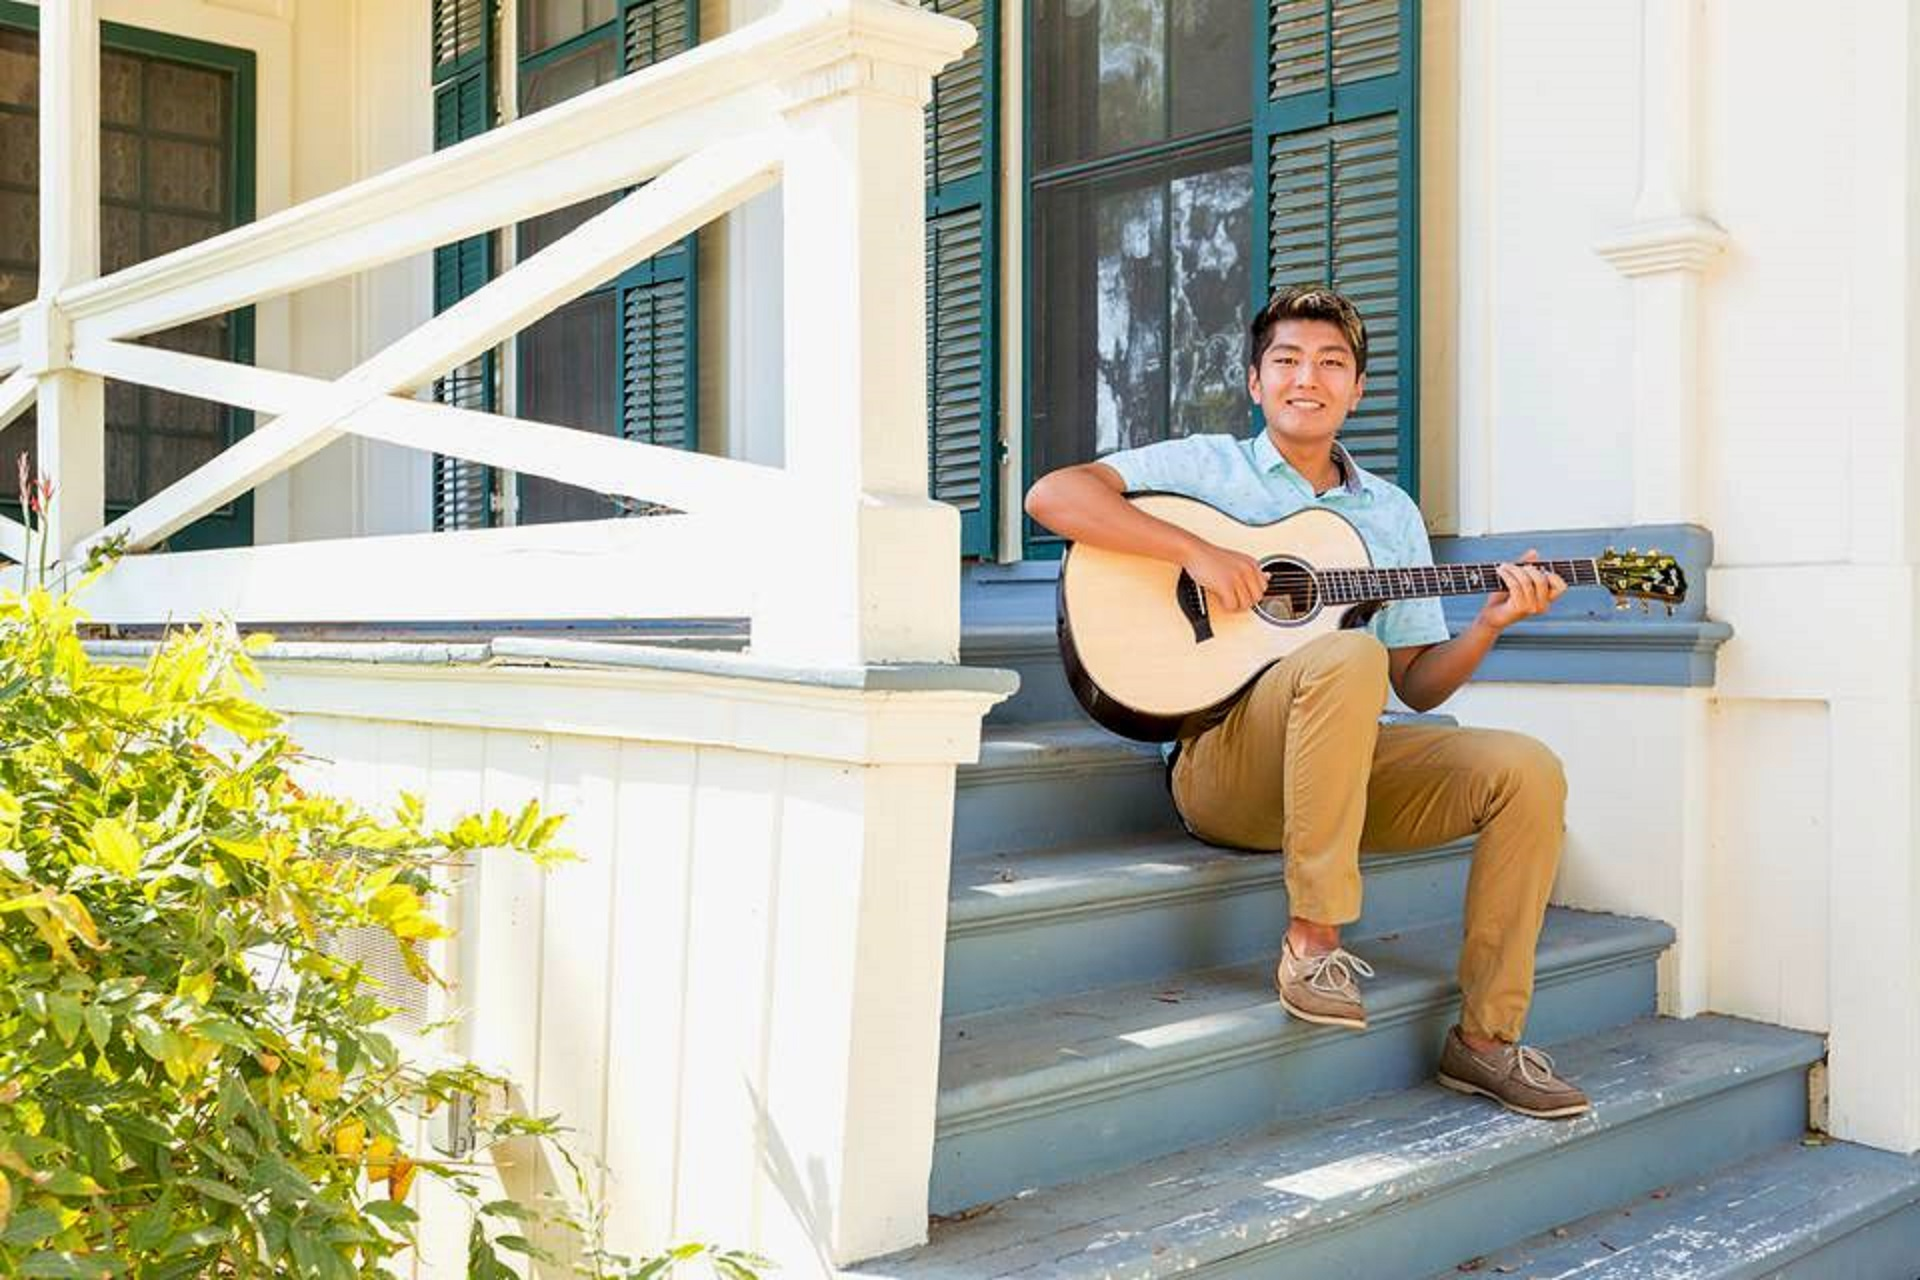 Young Songwriter Sings Praises of Community in Aftermath of Fire, Mudslides